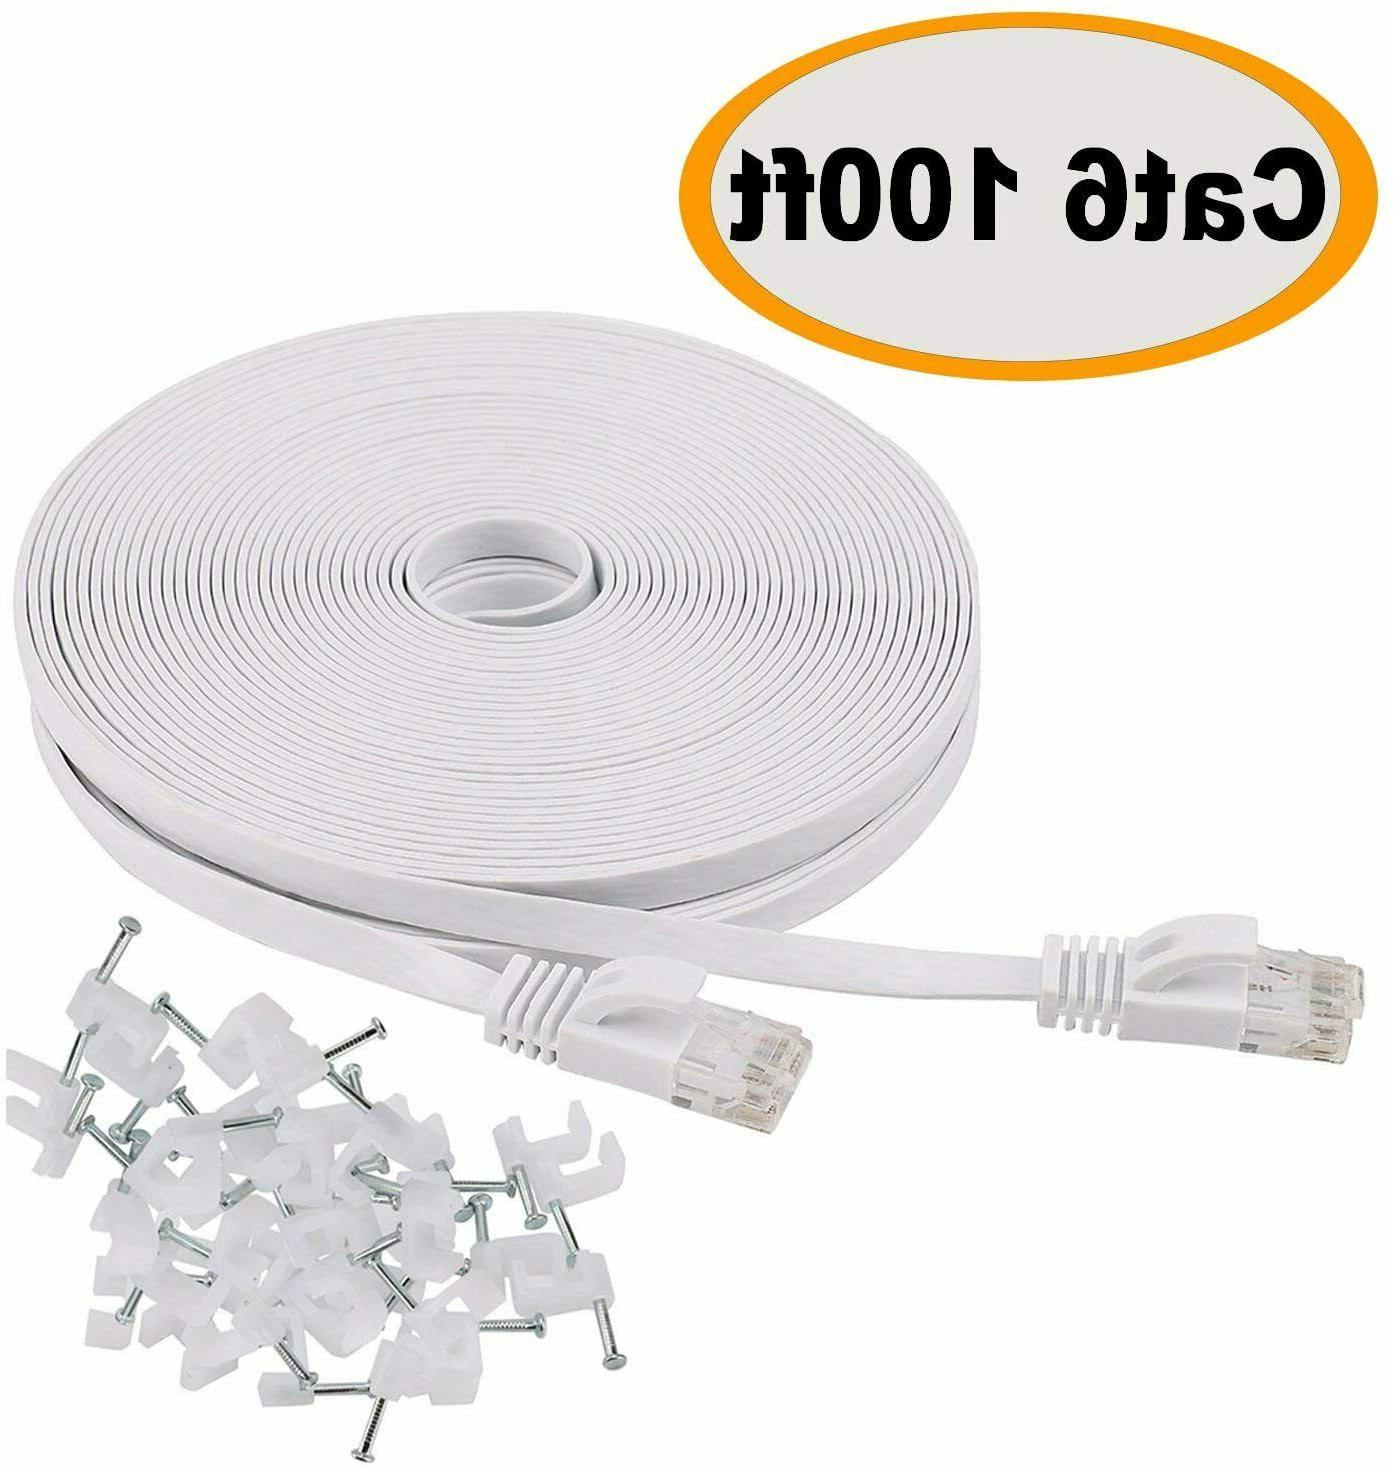 Cat 6 Ethernet Cable 100 ft Flat White with clips & Rj45 Con